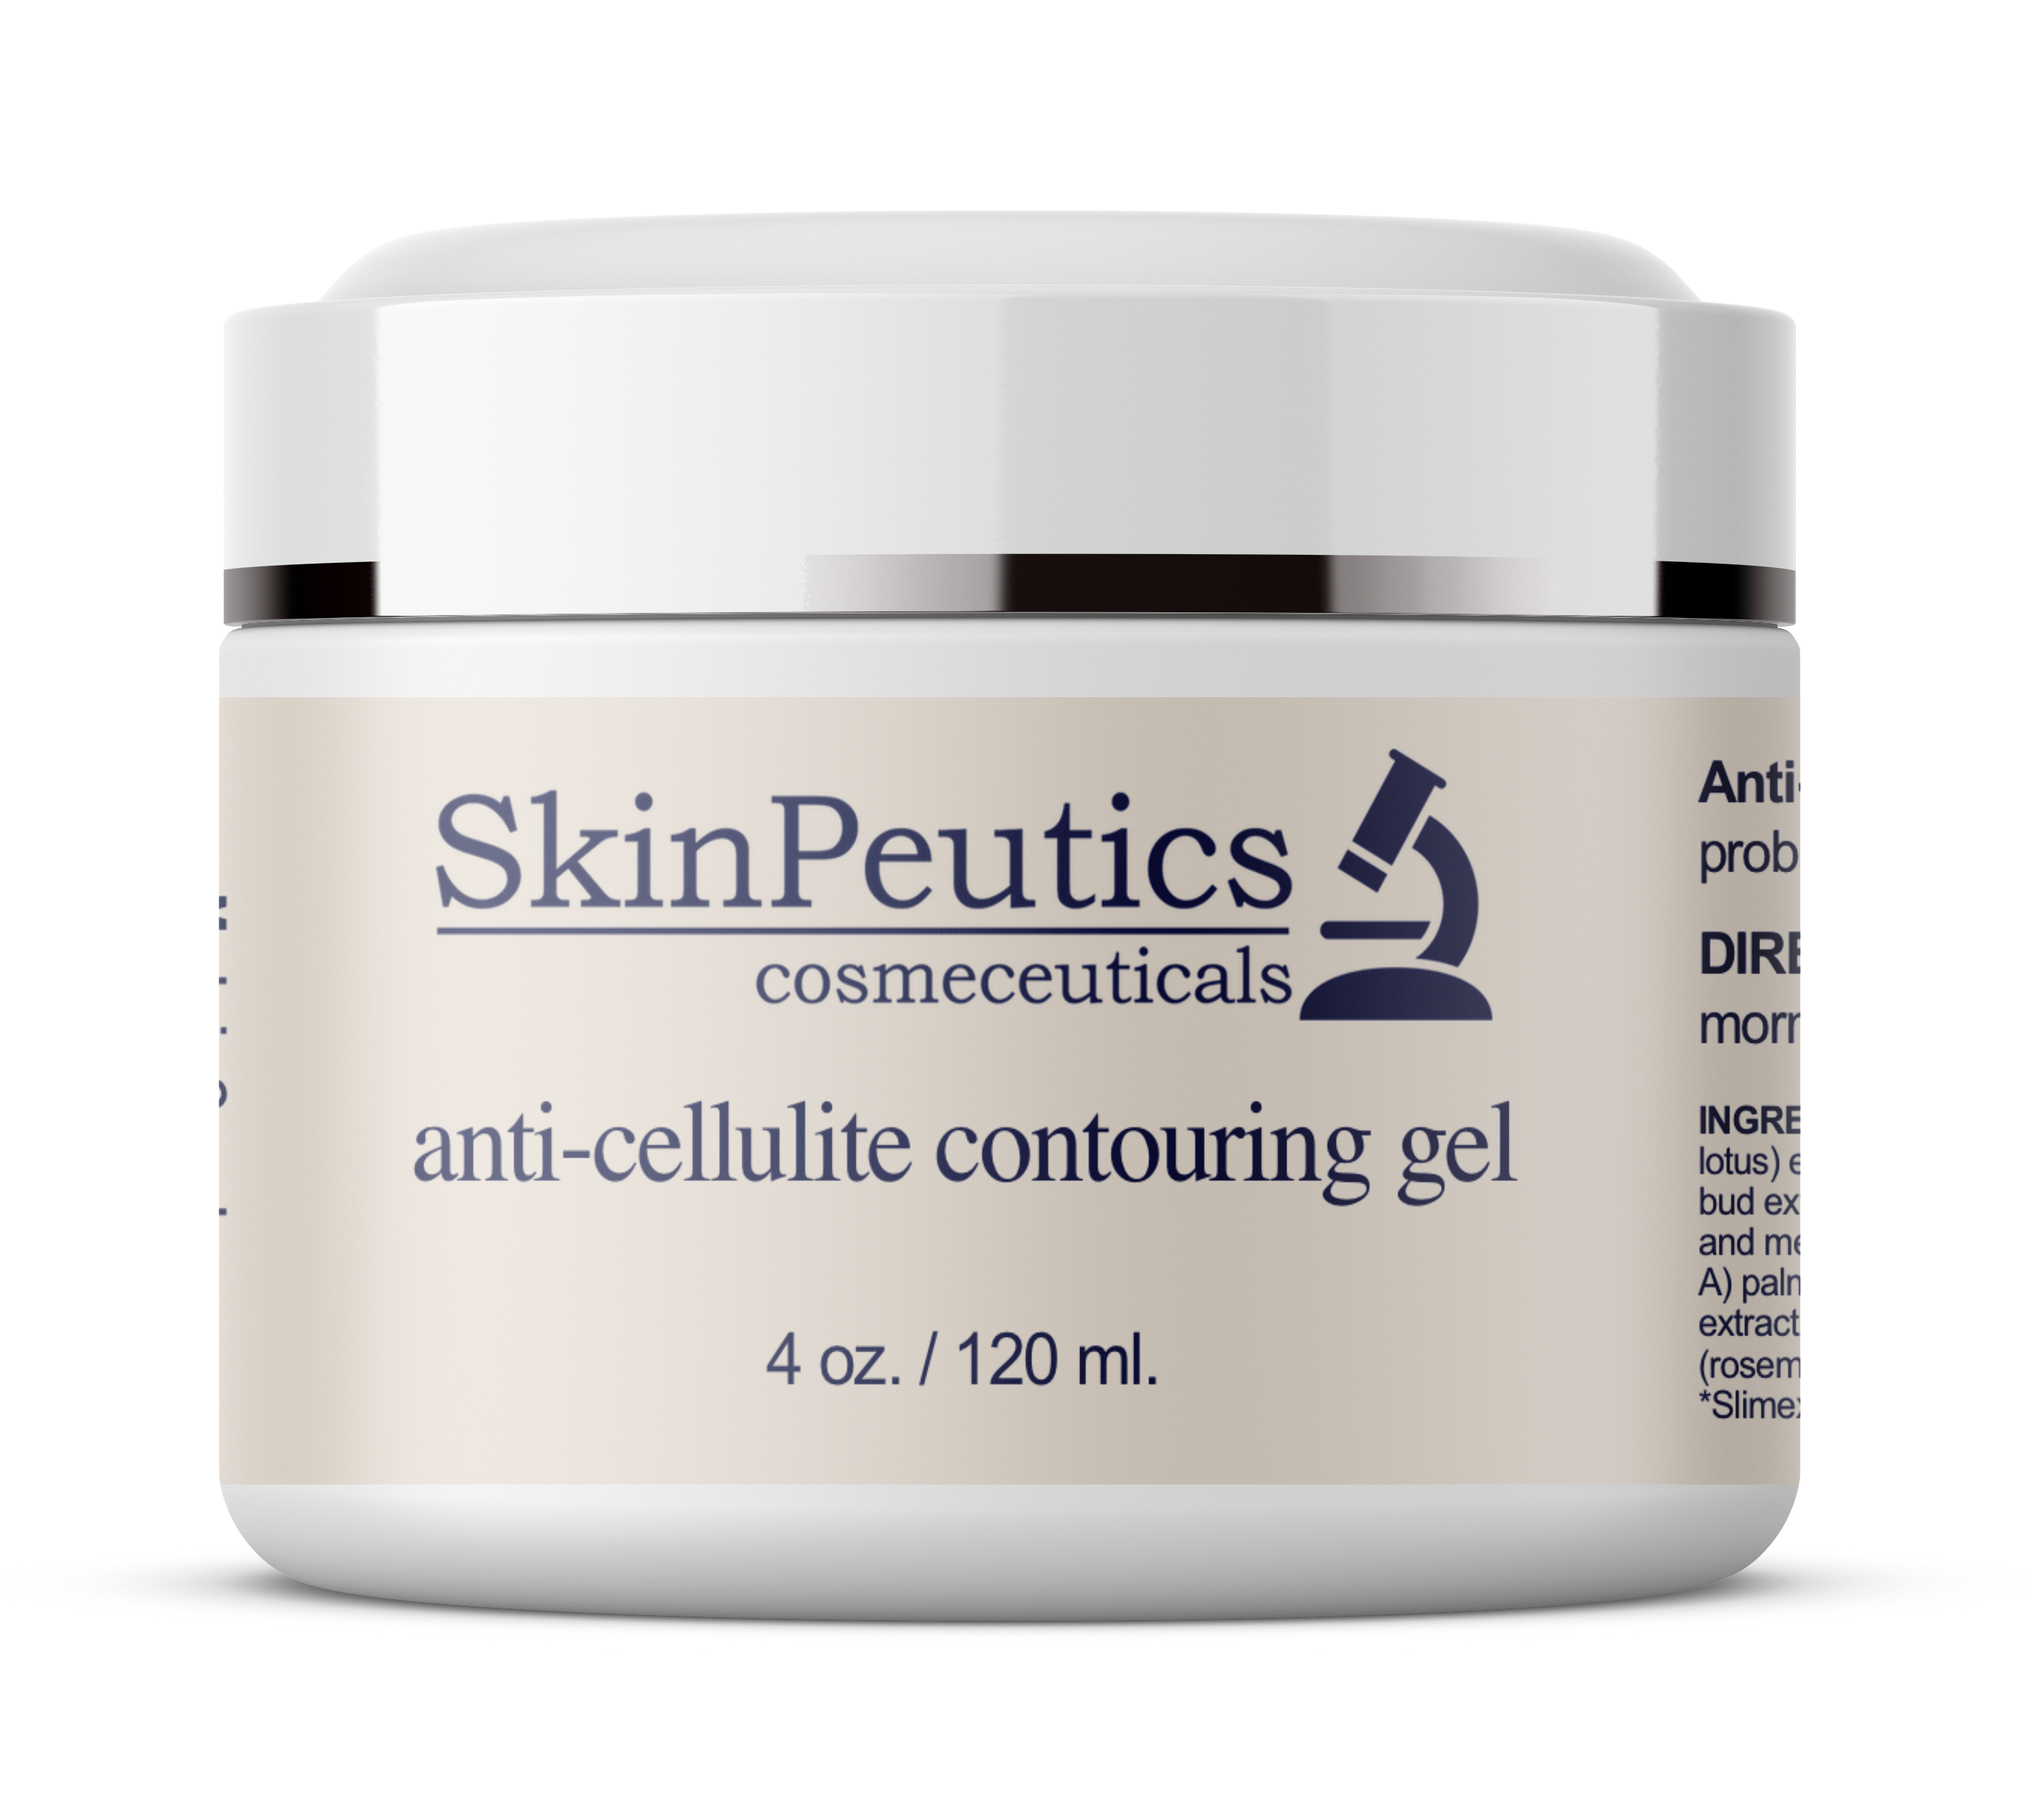 cellulite_cream_bottle_image